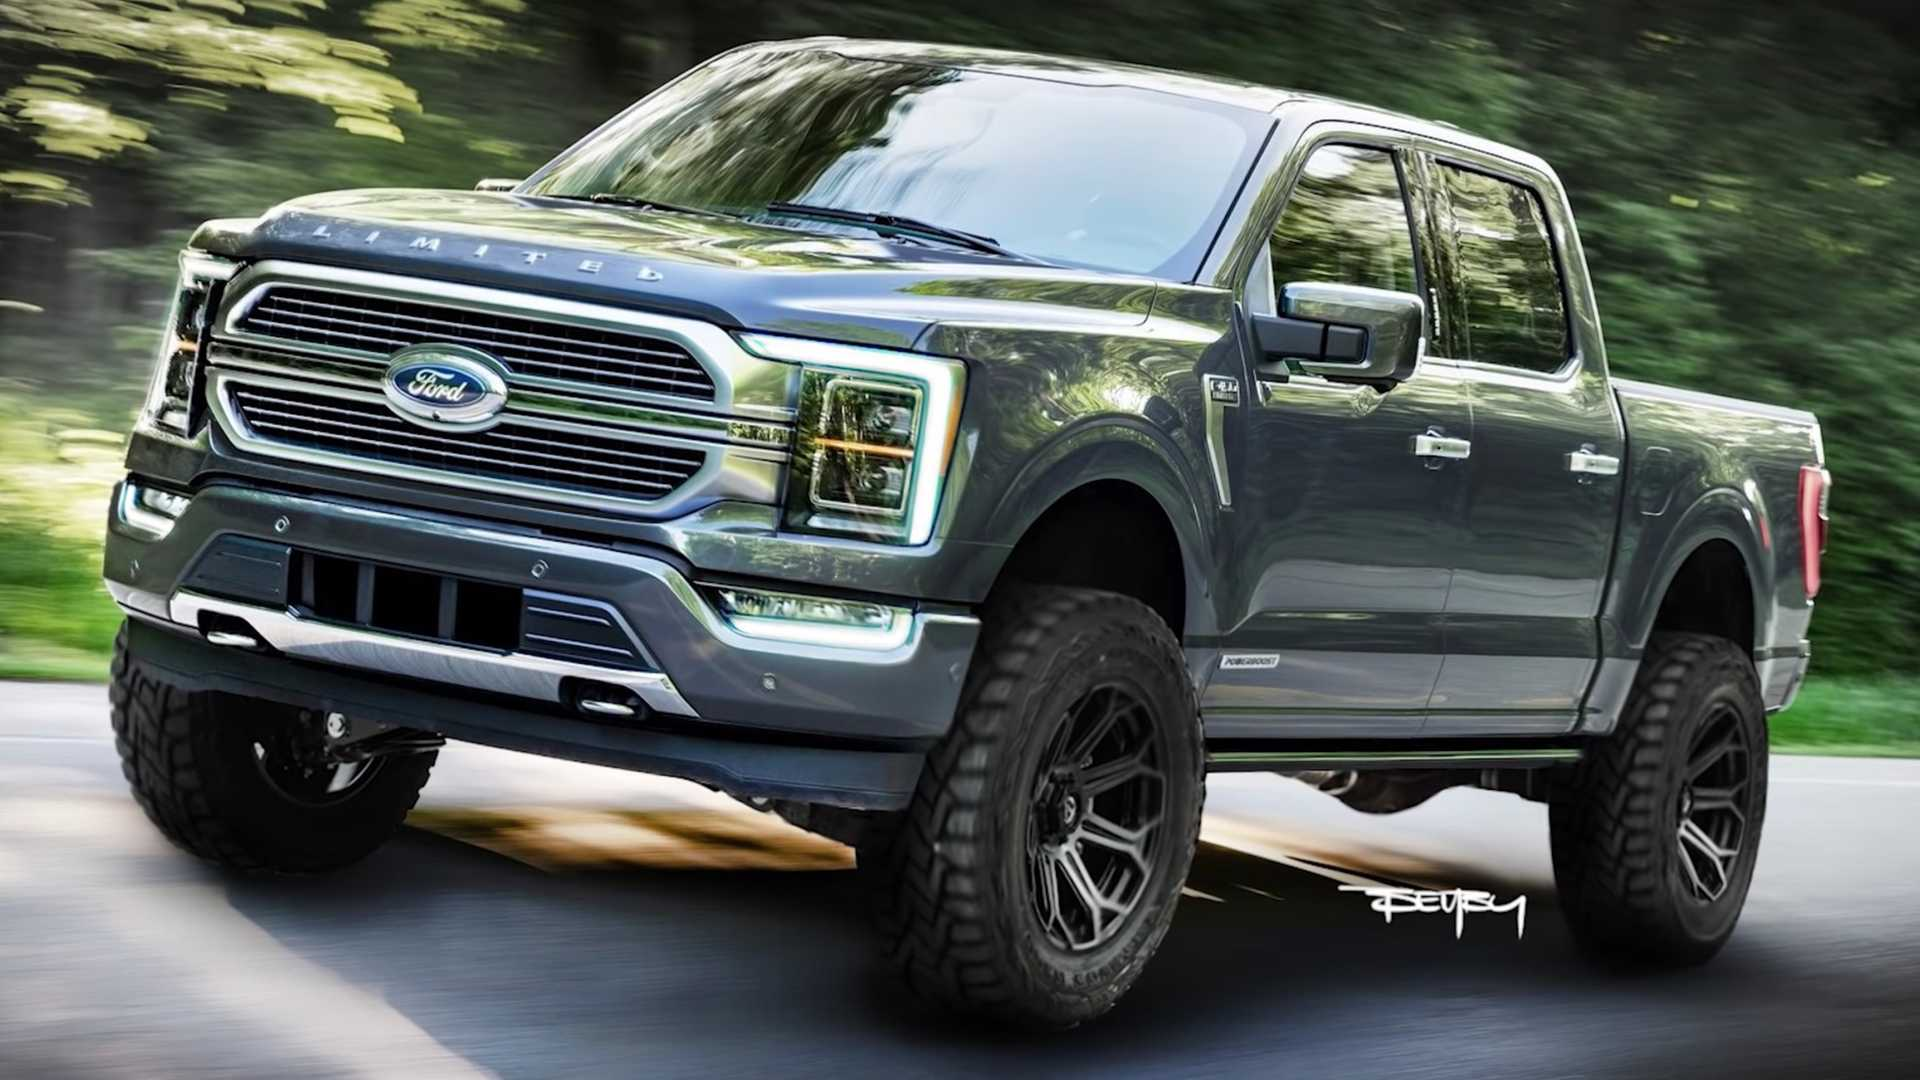 2021 Ford F 150 Rendering Gives New Pickup An Attractive Nose Job 1920x1080